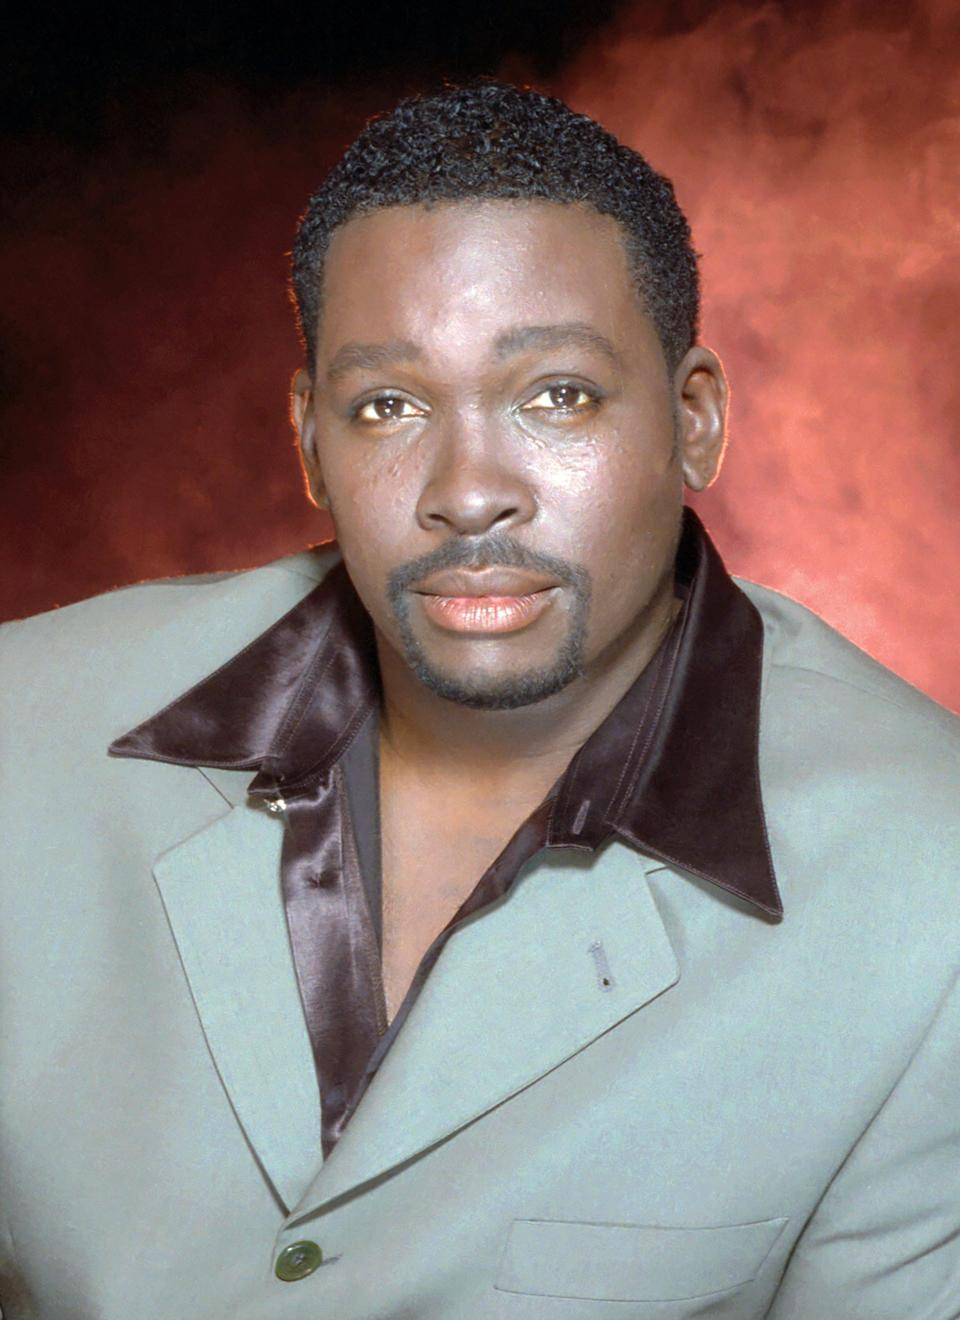 LOS ANGELES - 1997:  Actor and rapper Deezer D (Dearon Thompson) poses for a portrait in 1997 in Los Angeles, California. (Photo by Harry Langdon/Getty Images)